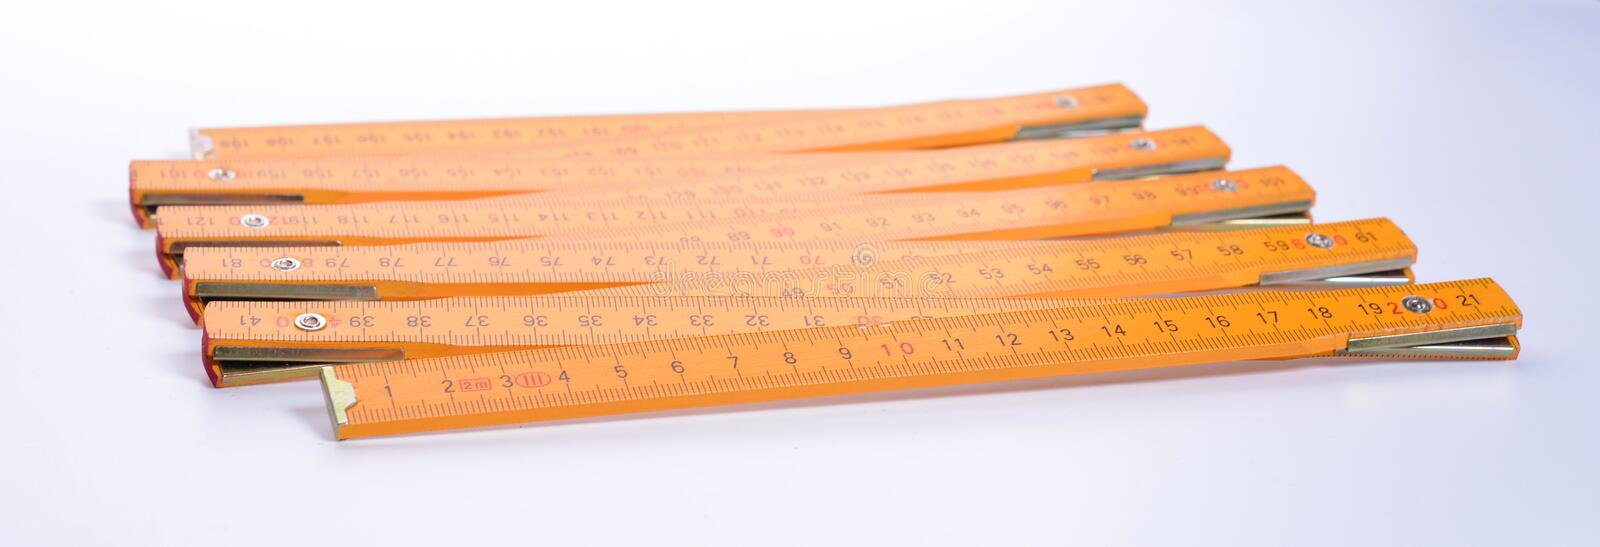 Yellow carpenter`s ruler. On a white background royalty free stock image